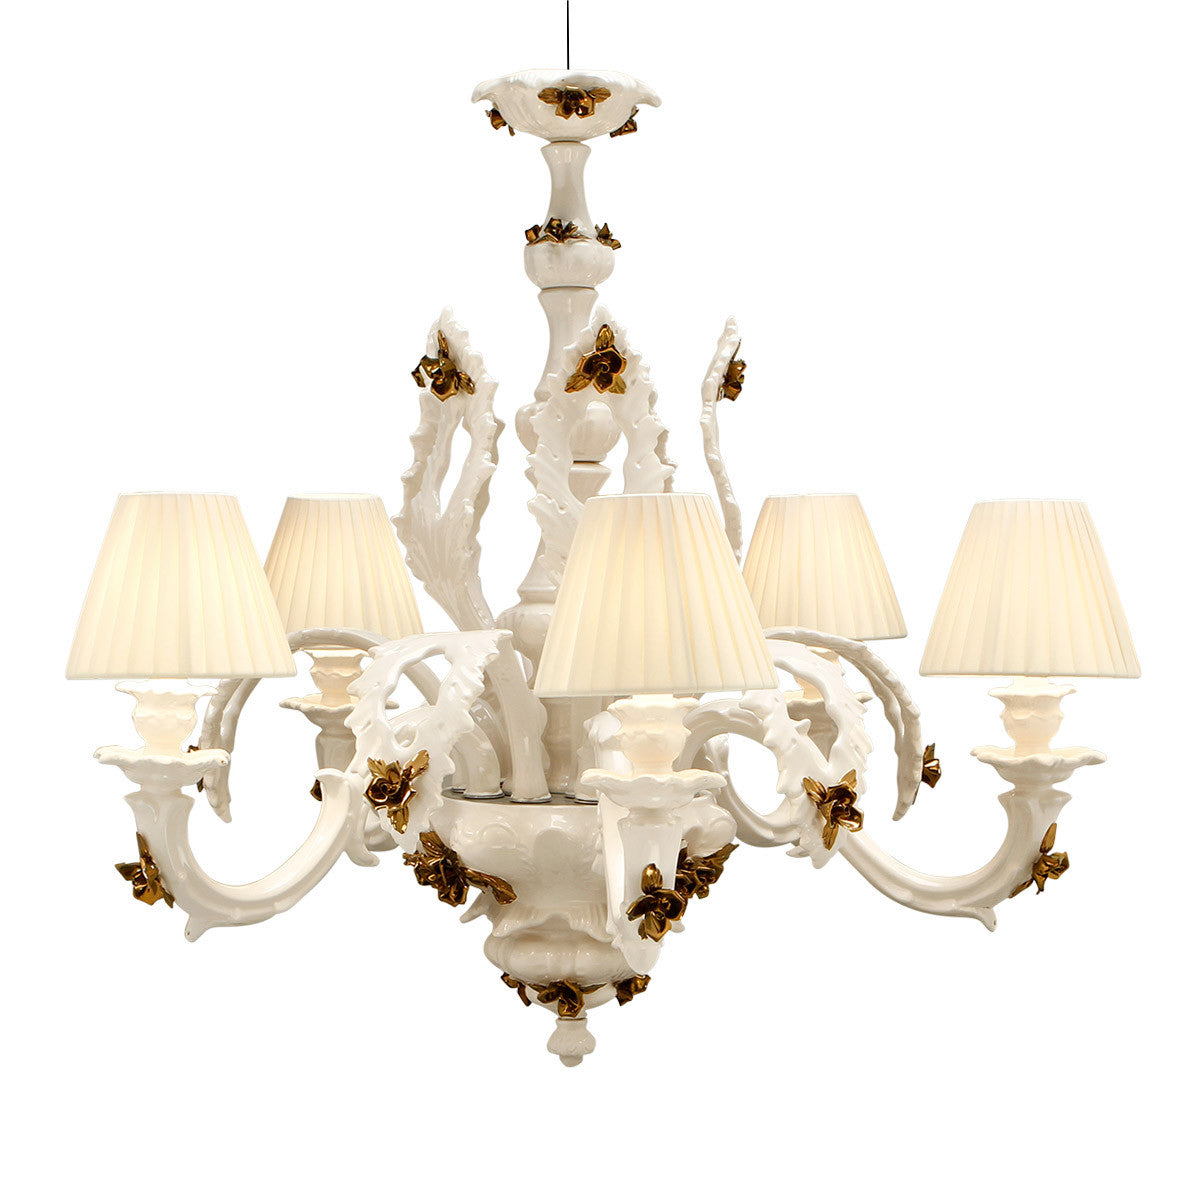 Ceramic chandelier with bronze accents zanardello srl ceramic chandelier with bronze accents entryway chandelier home lighting arubaitofo Image collections